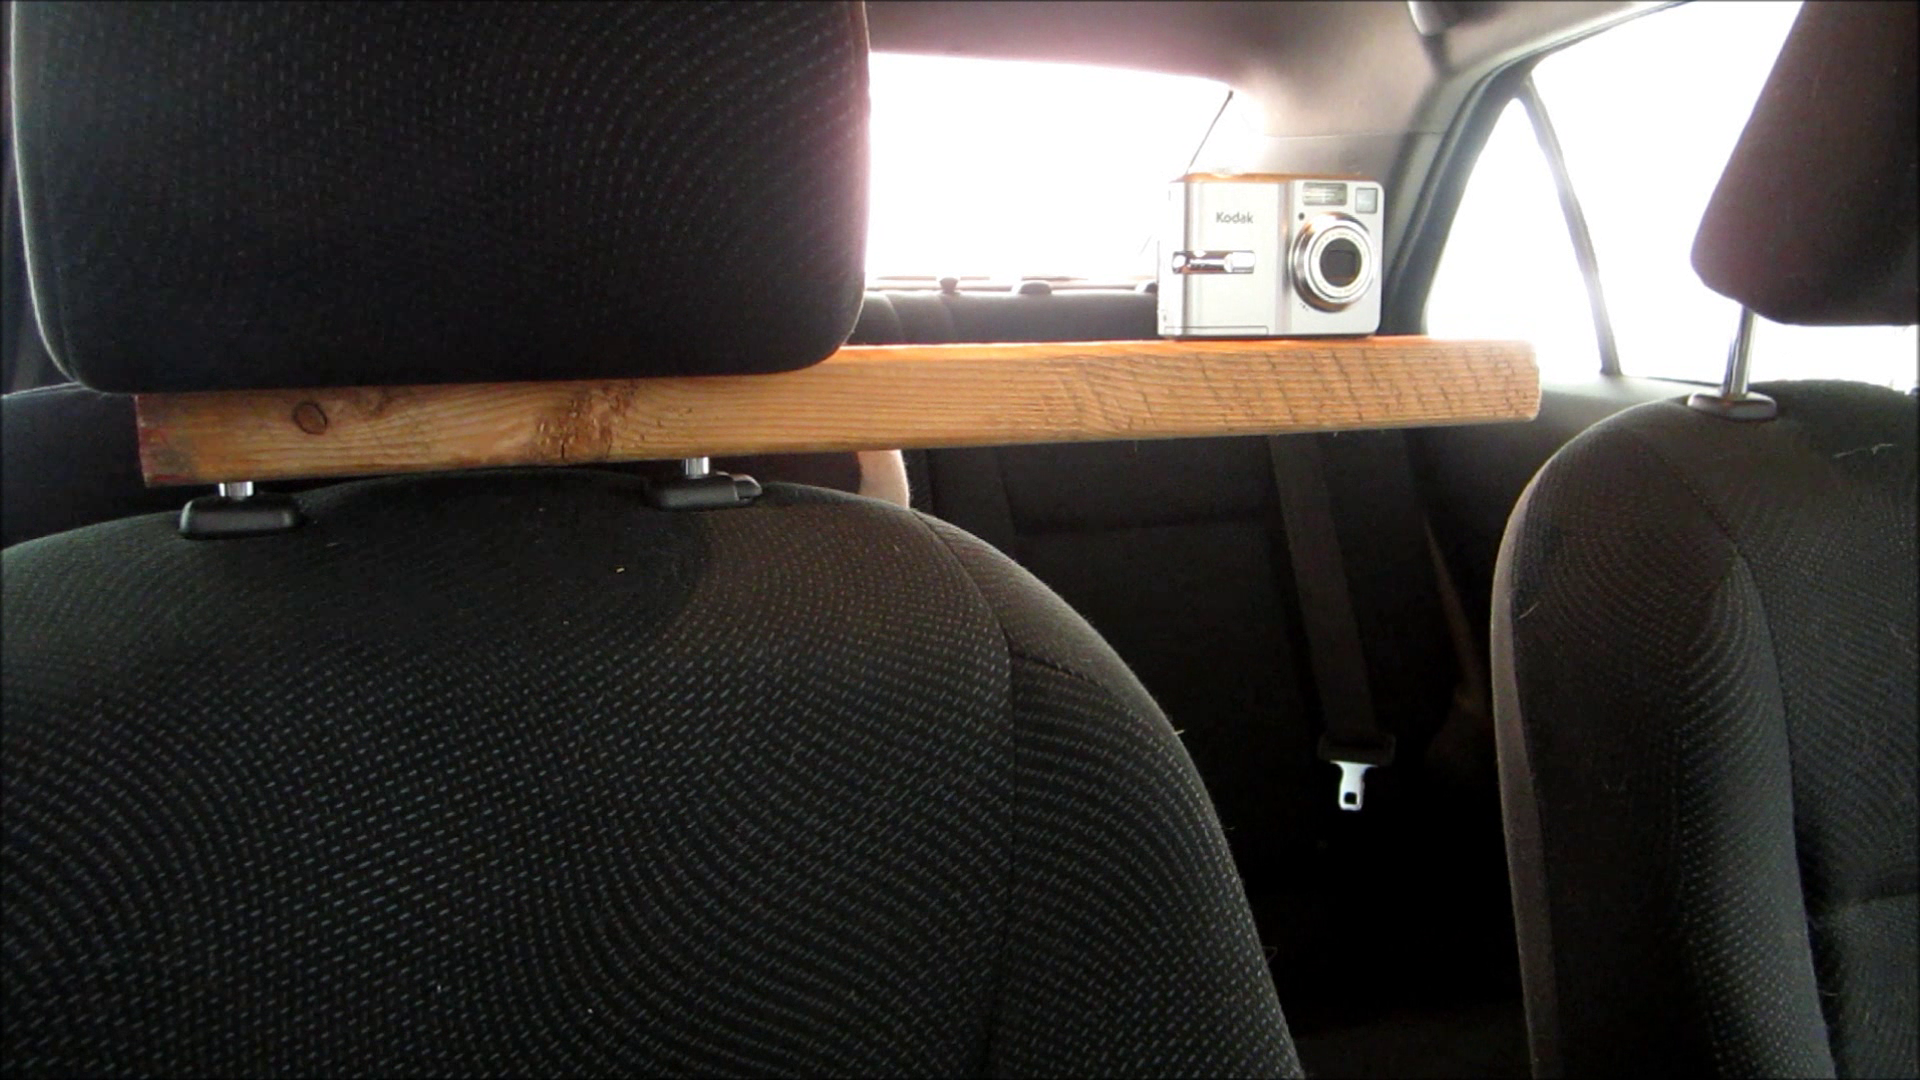 Picture of Mount the 2x2 Onto the Headrest